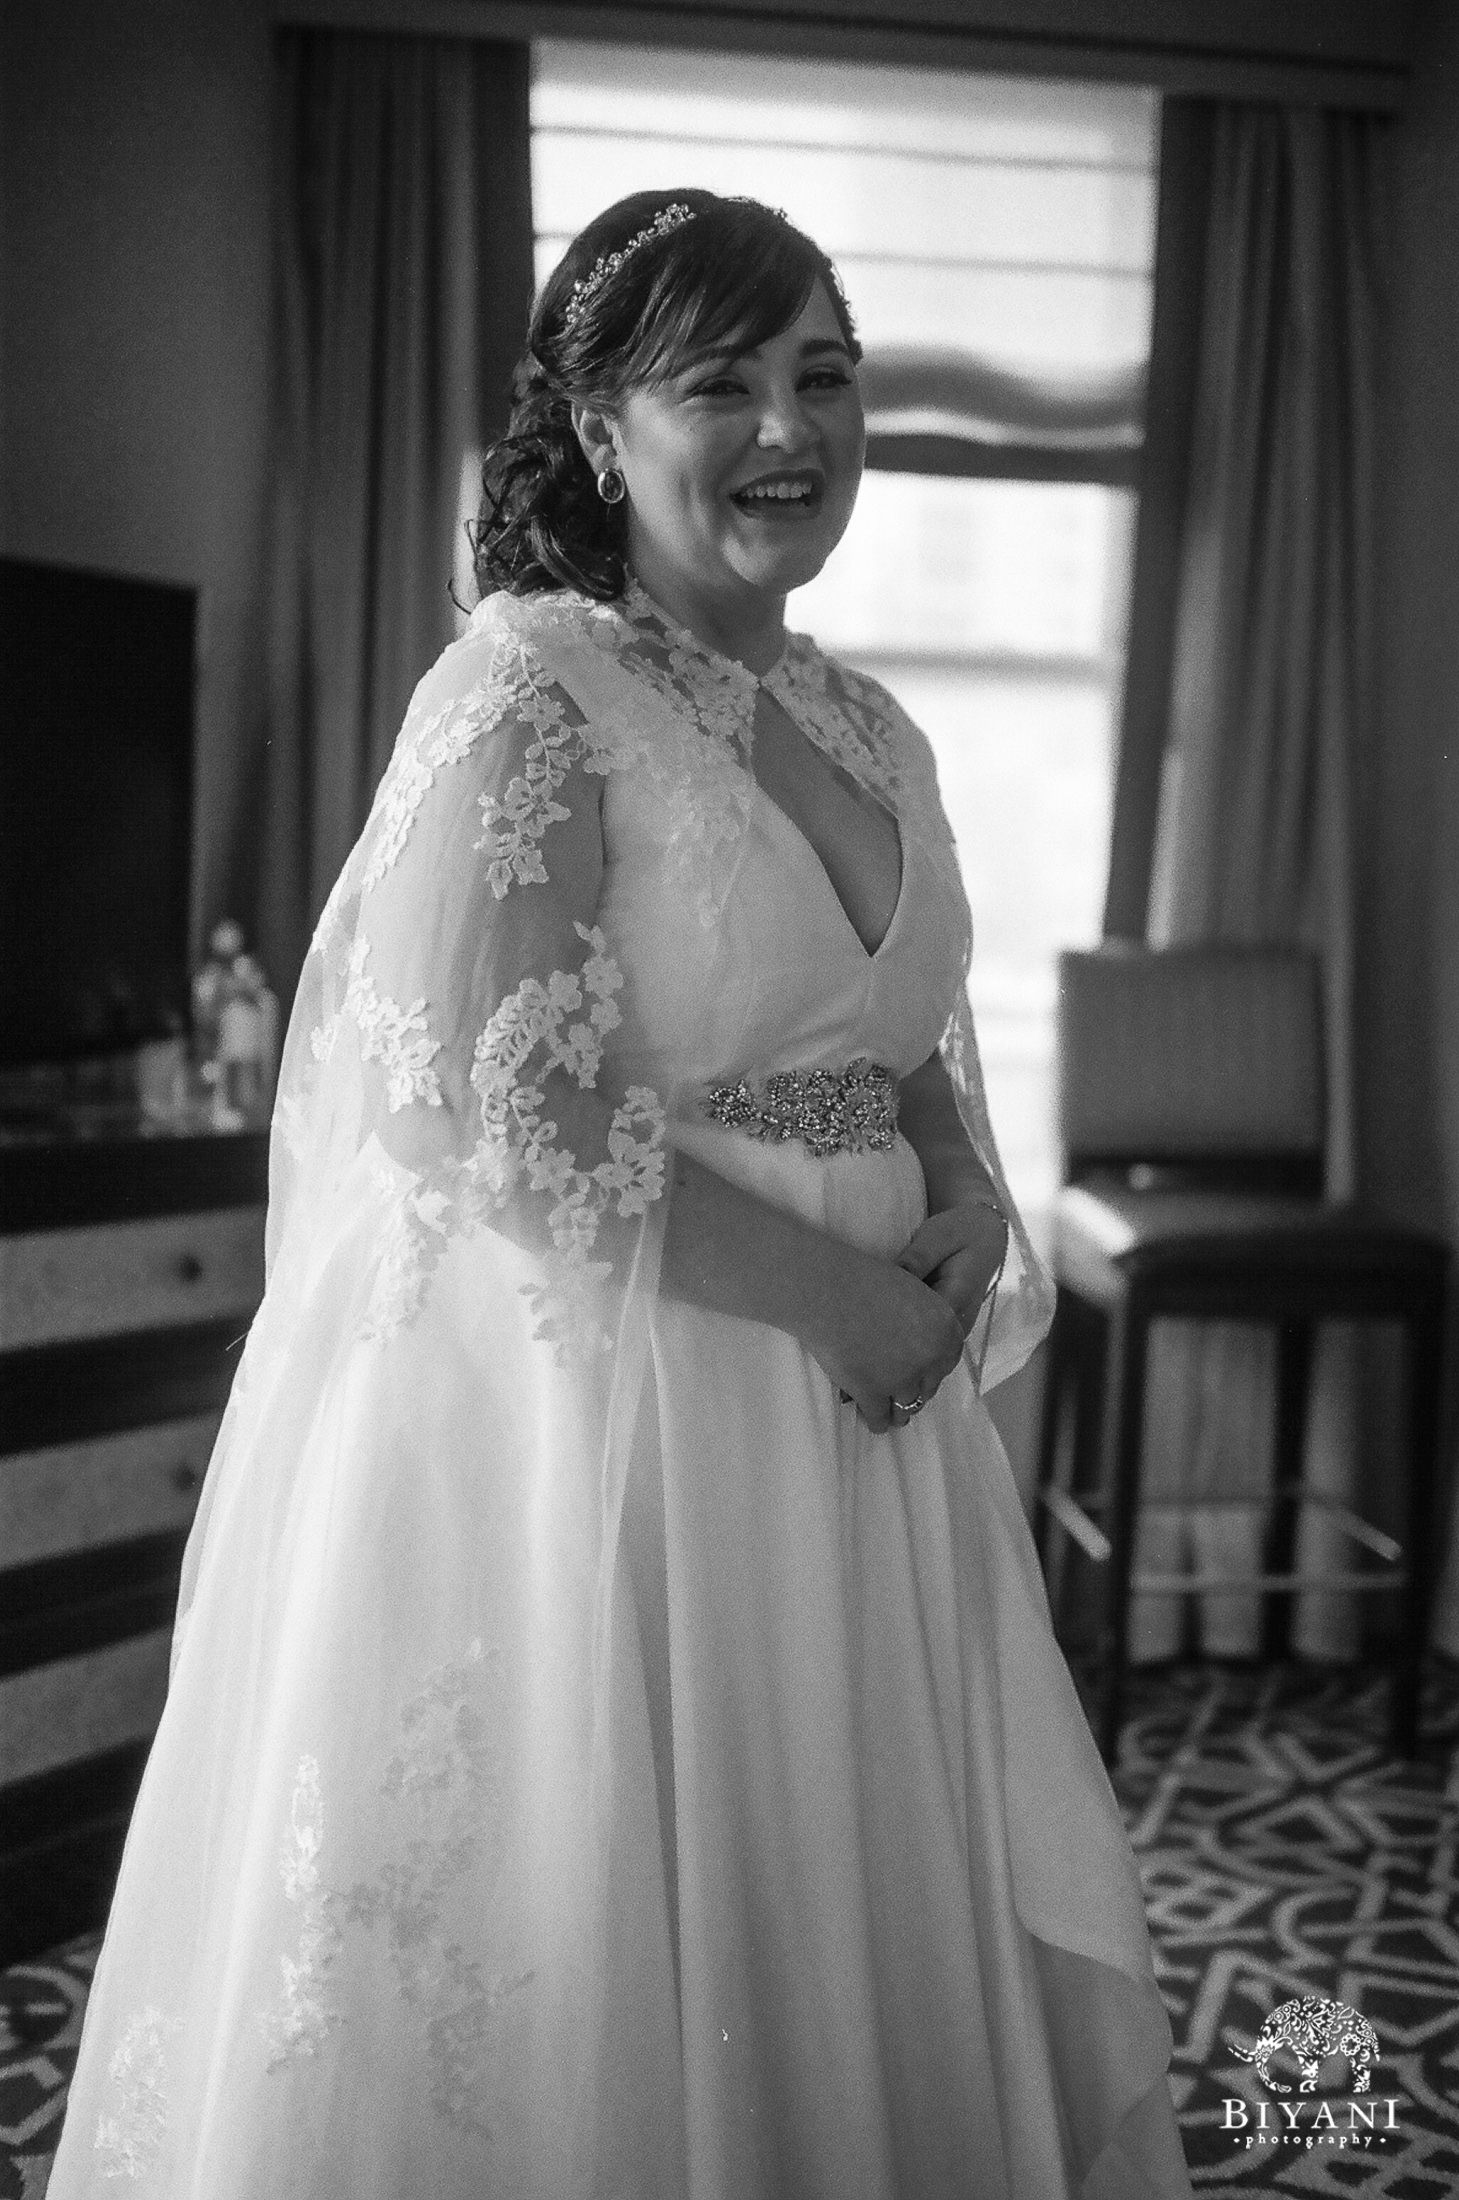 Bride smiling & laughing while getting dressed